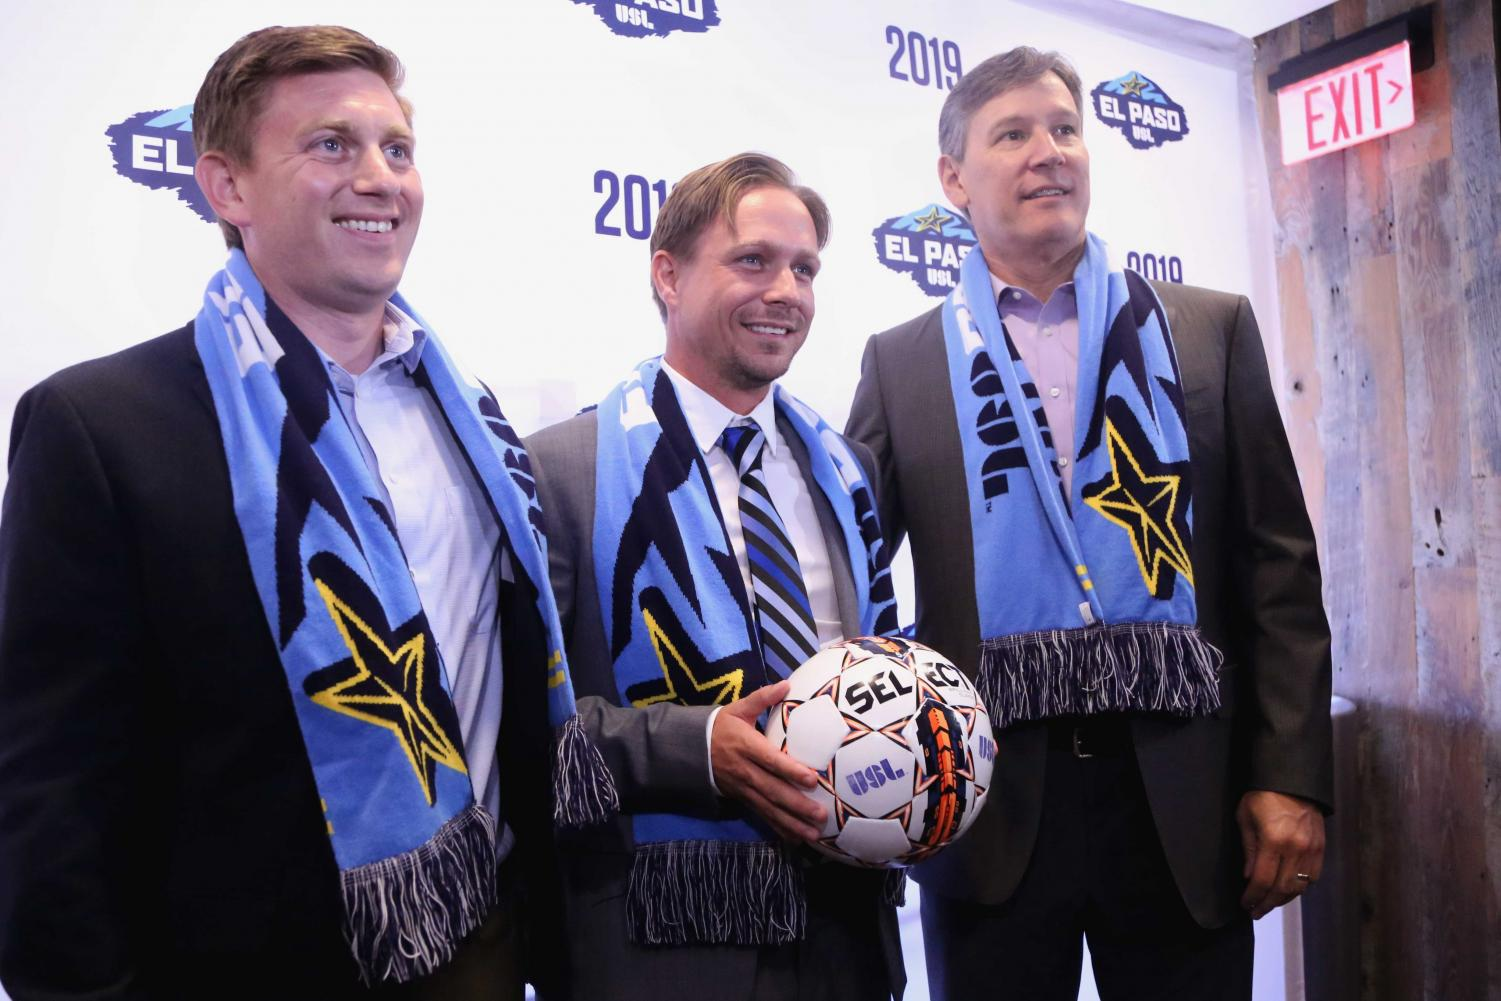 %28From+left+to+right%29+General+Manager+Andrew+Forrest+Head+Coach+and+Technical+Director+Mark+Lowry+and+USL+President+Alan+Ledford+pose+for+a+photo+after+the+announcement.+